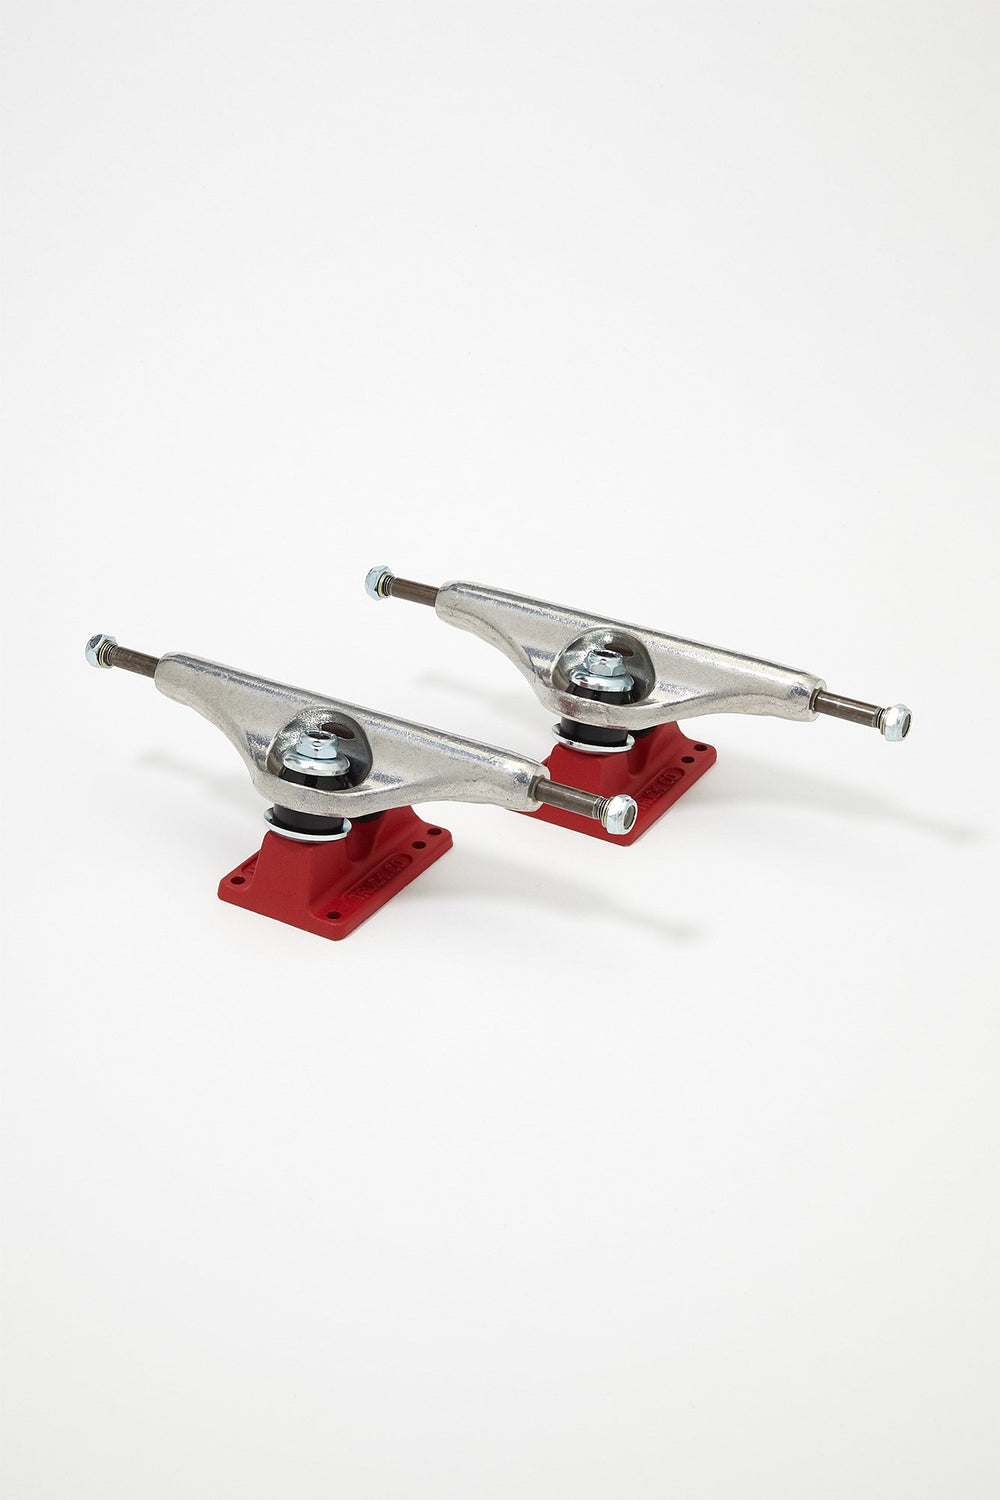 Independent Stage XI Thrasher Skateboard Trucks Silver